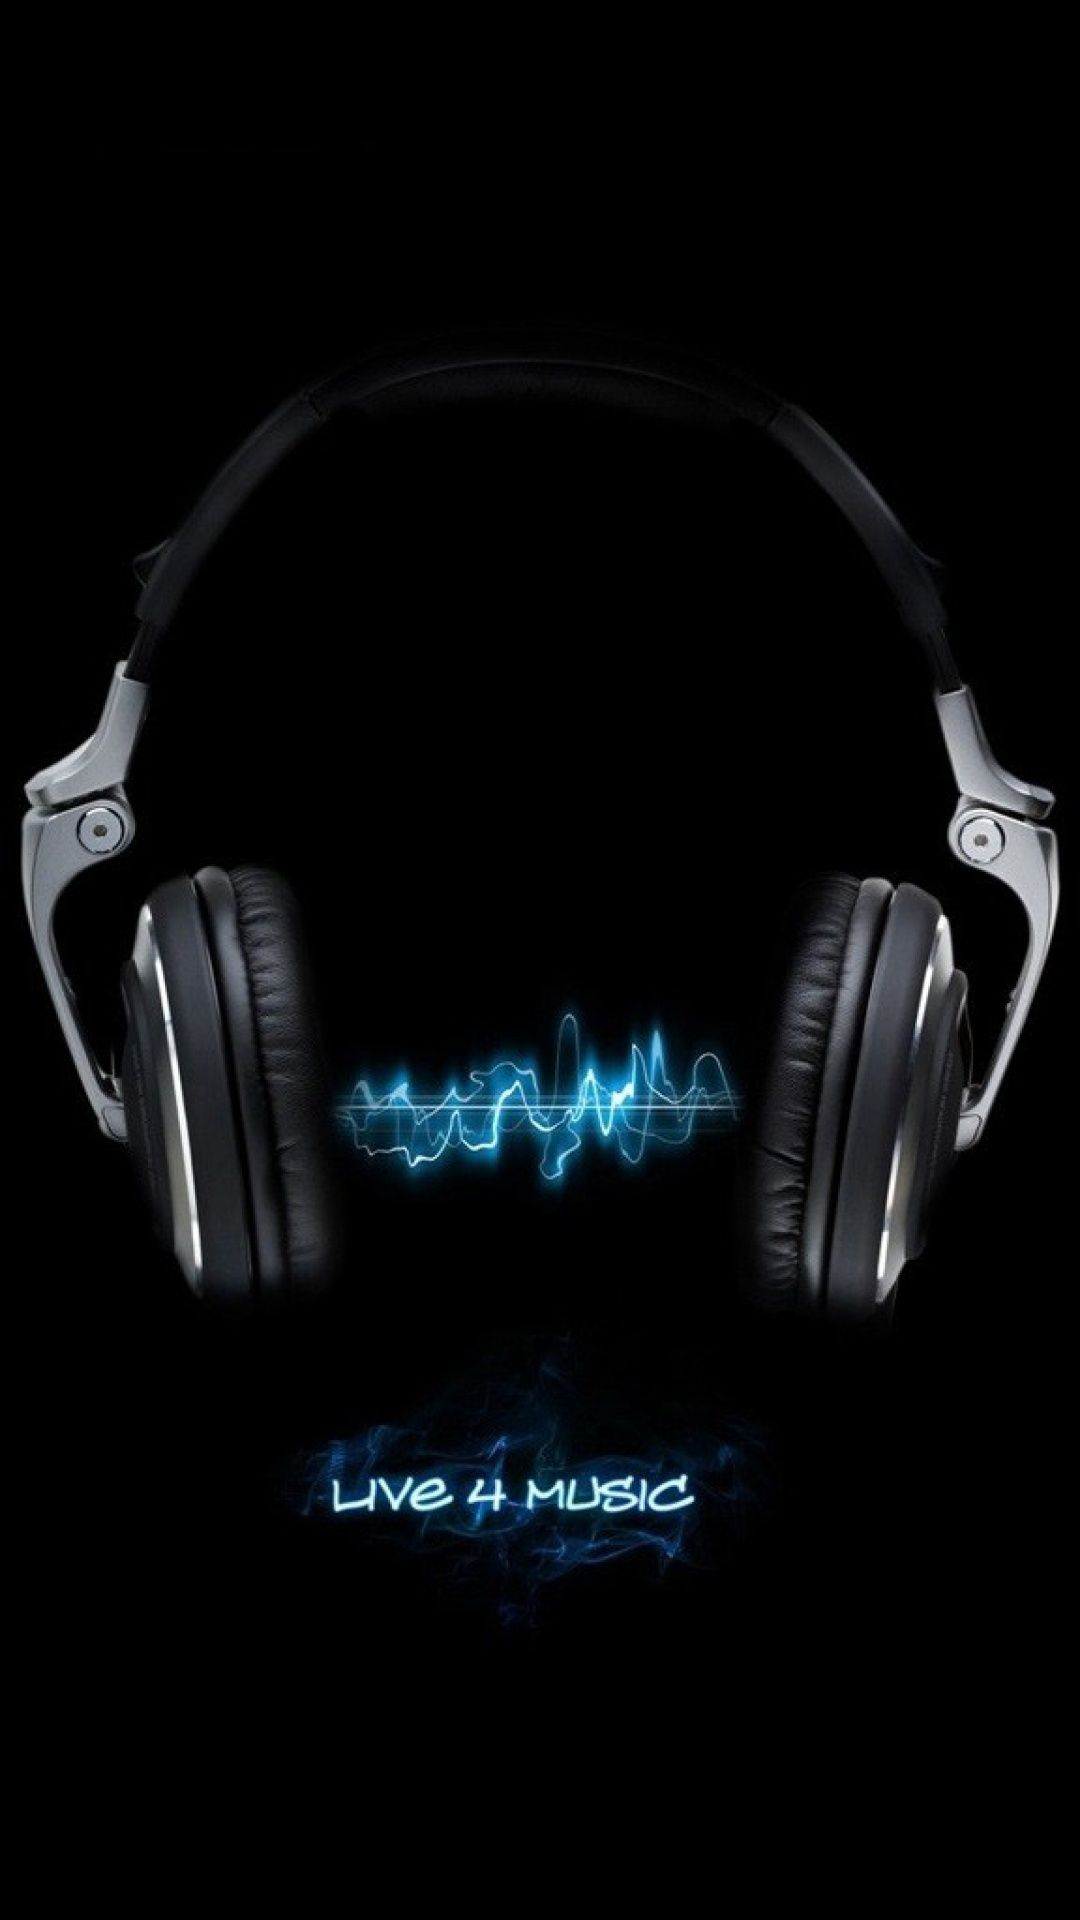 Live For Music Black Neon Blue Iphone 6 Plus Hd Wallpaper Iphone Wallpaper Music Wallpaper Iphone Neon Headphones Art